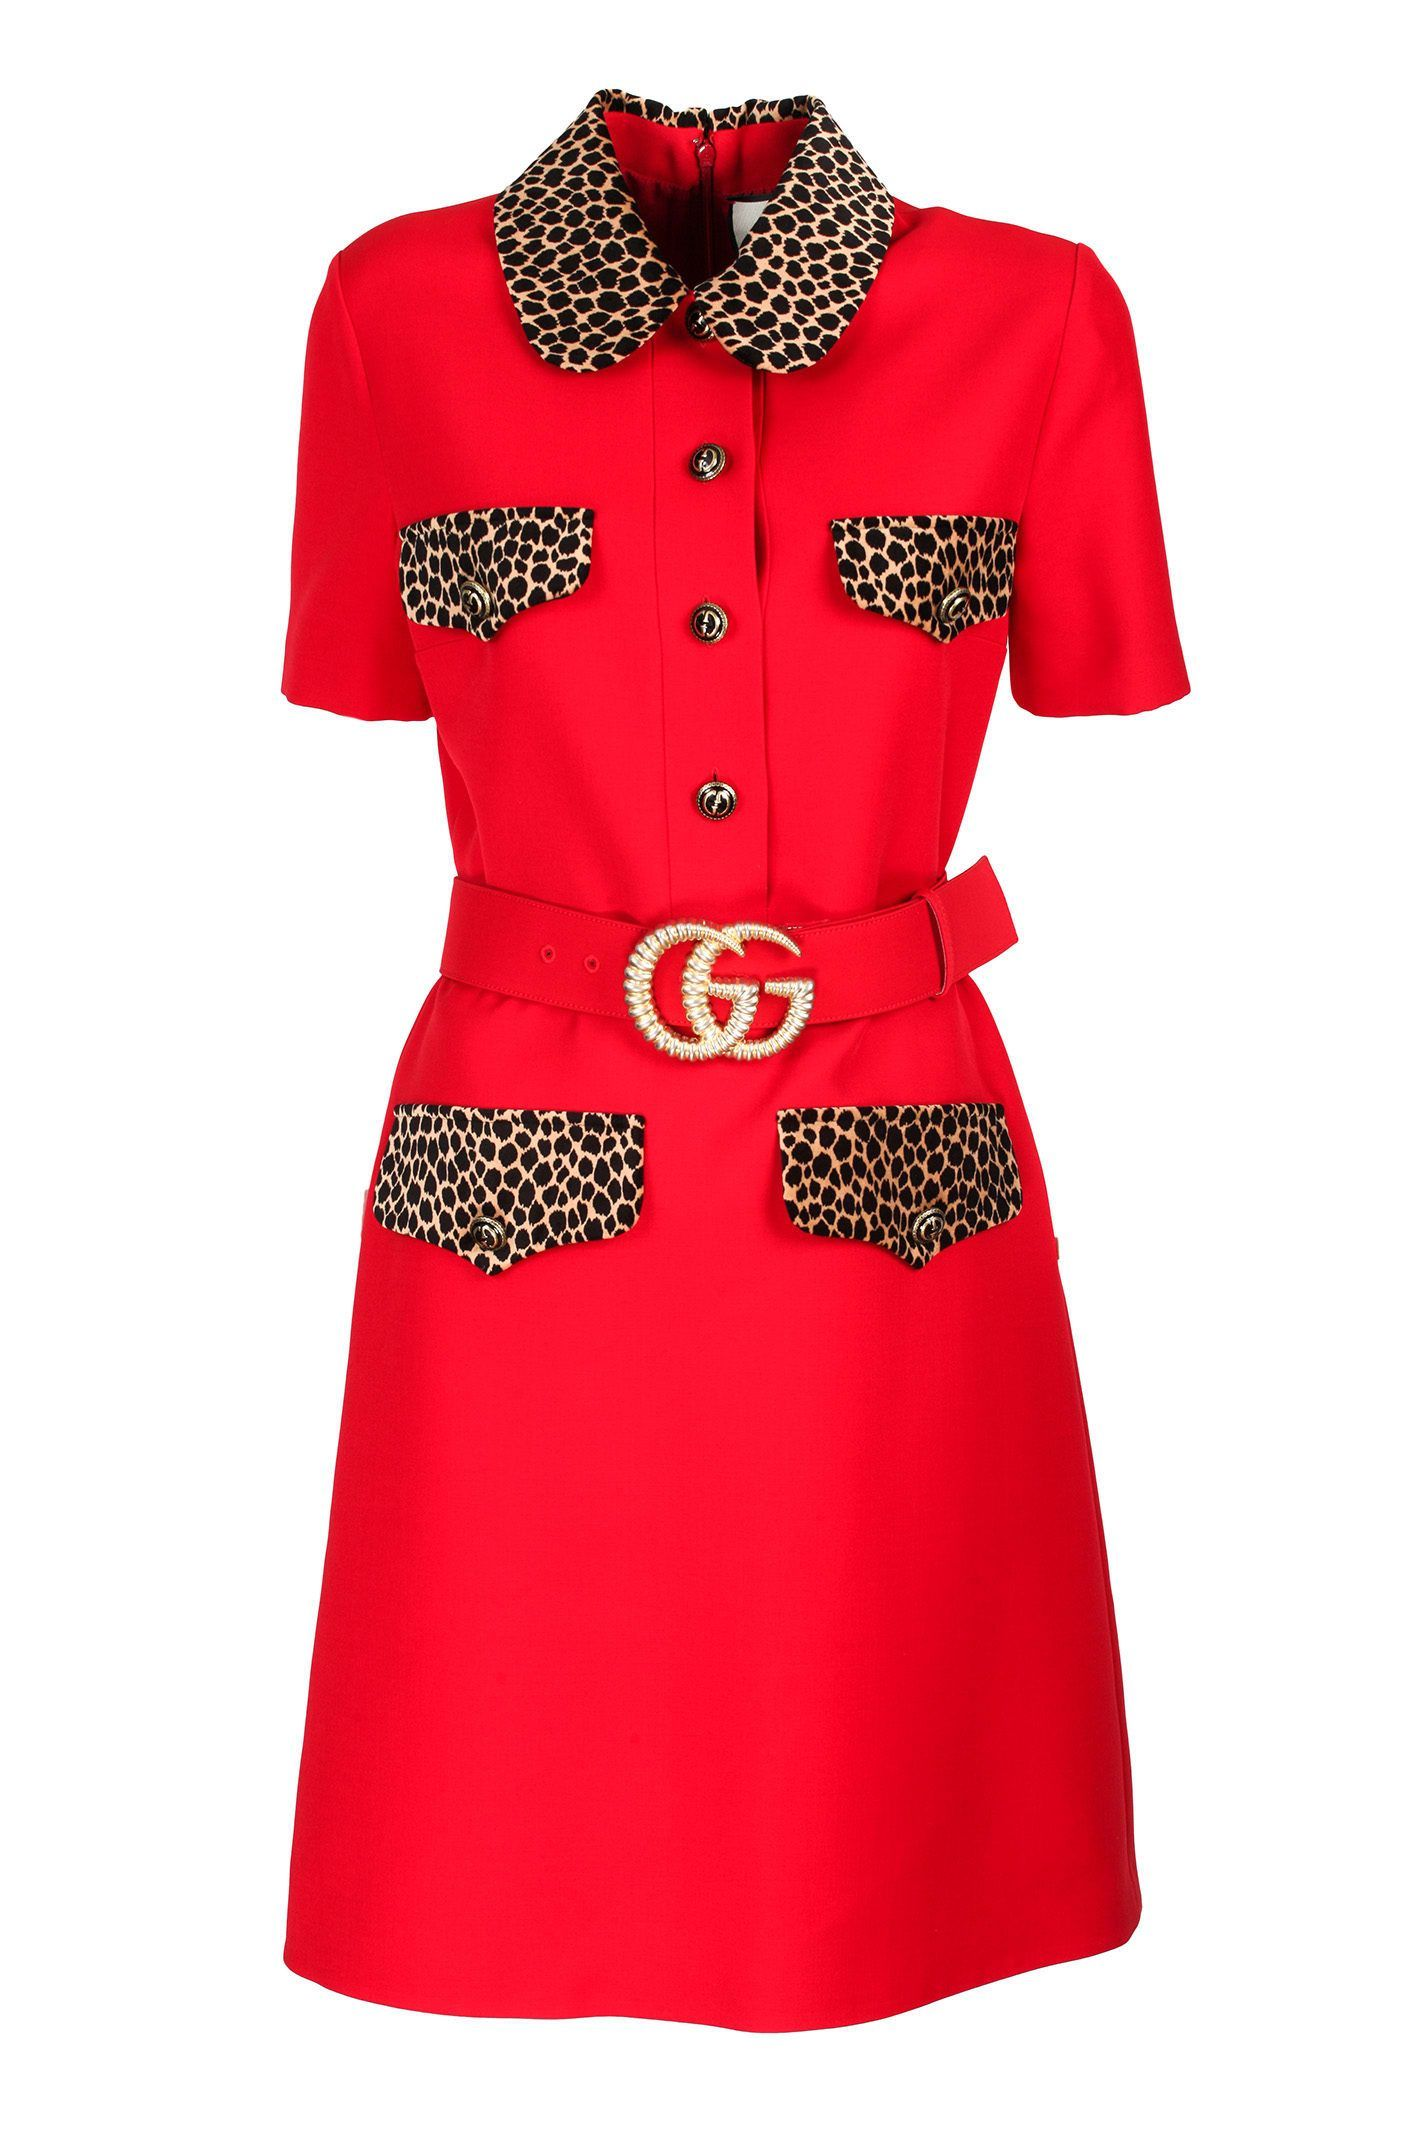 Gucci Dress  Edgy fashion, Gucci dress, Party dresses for women